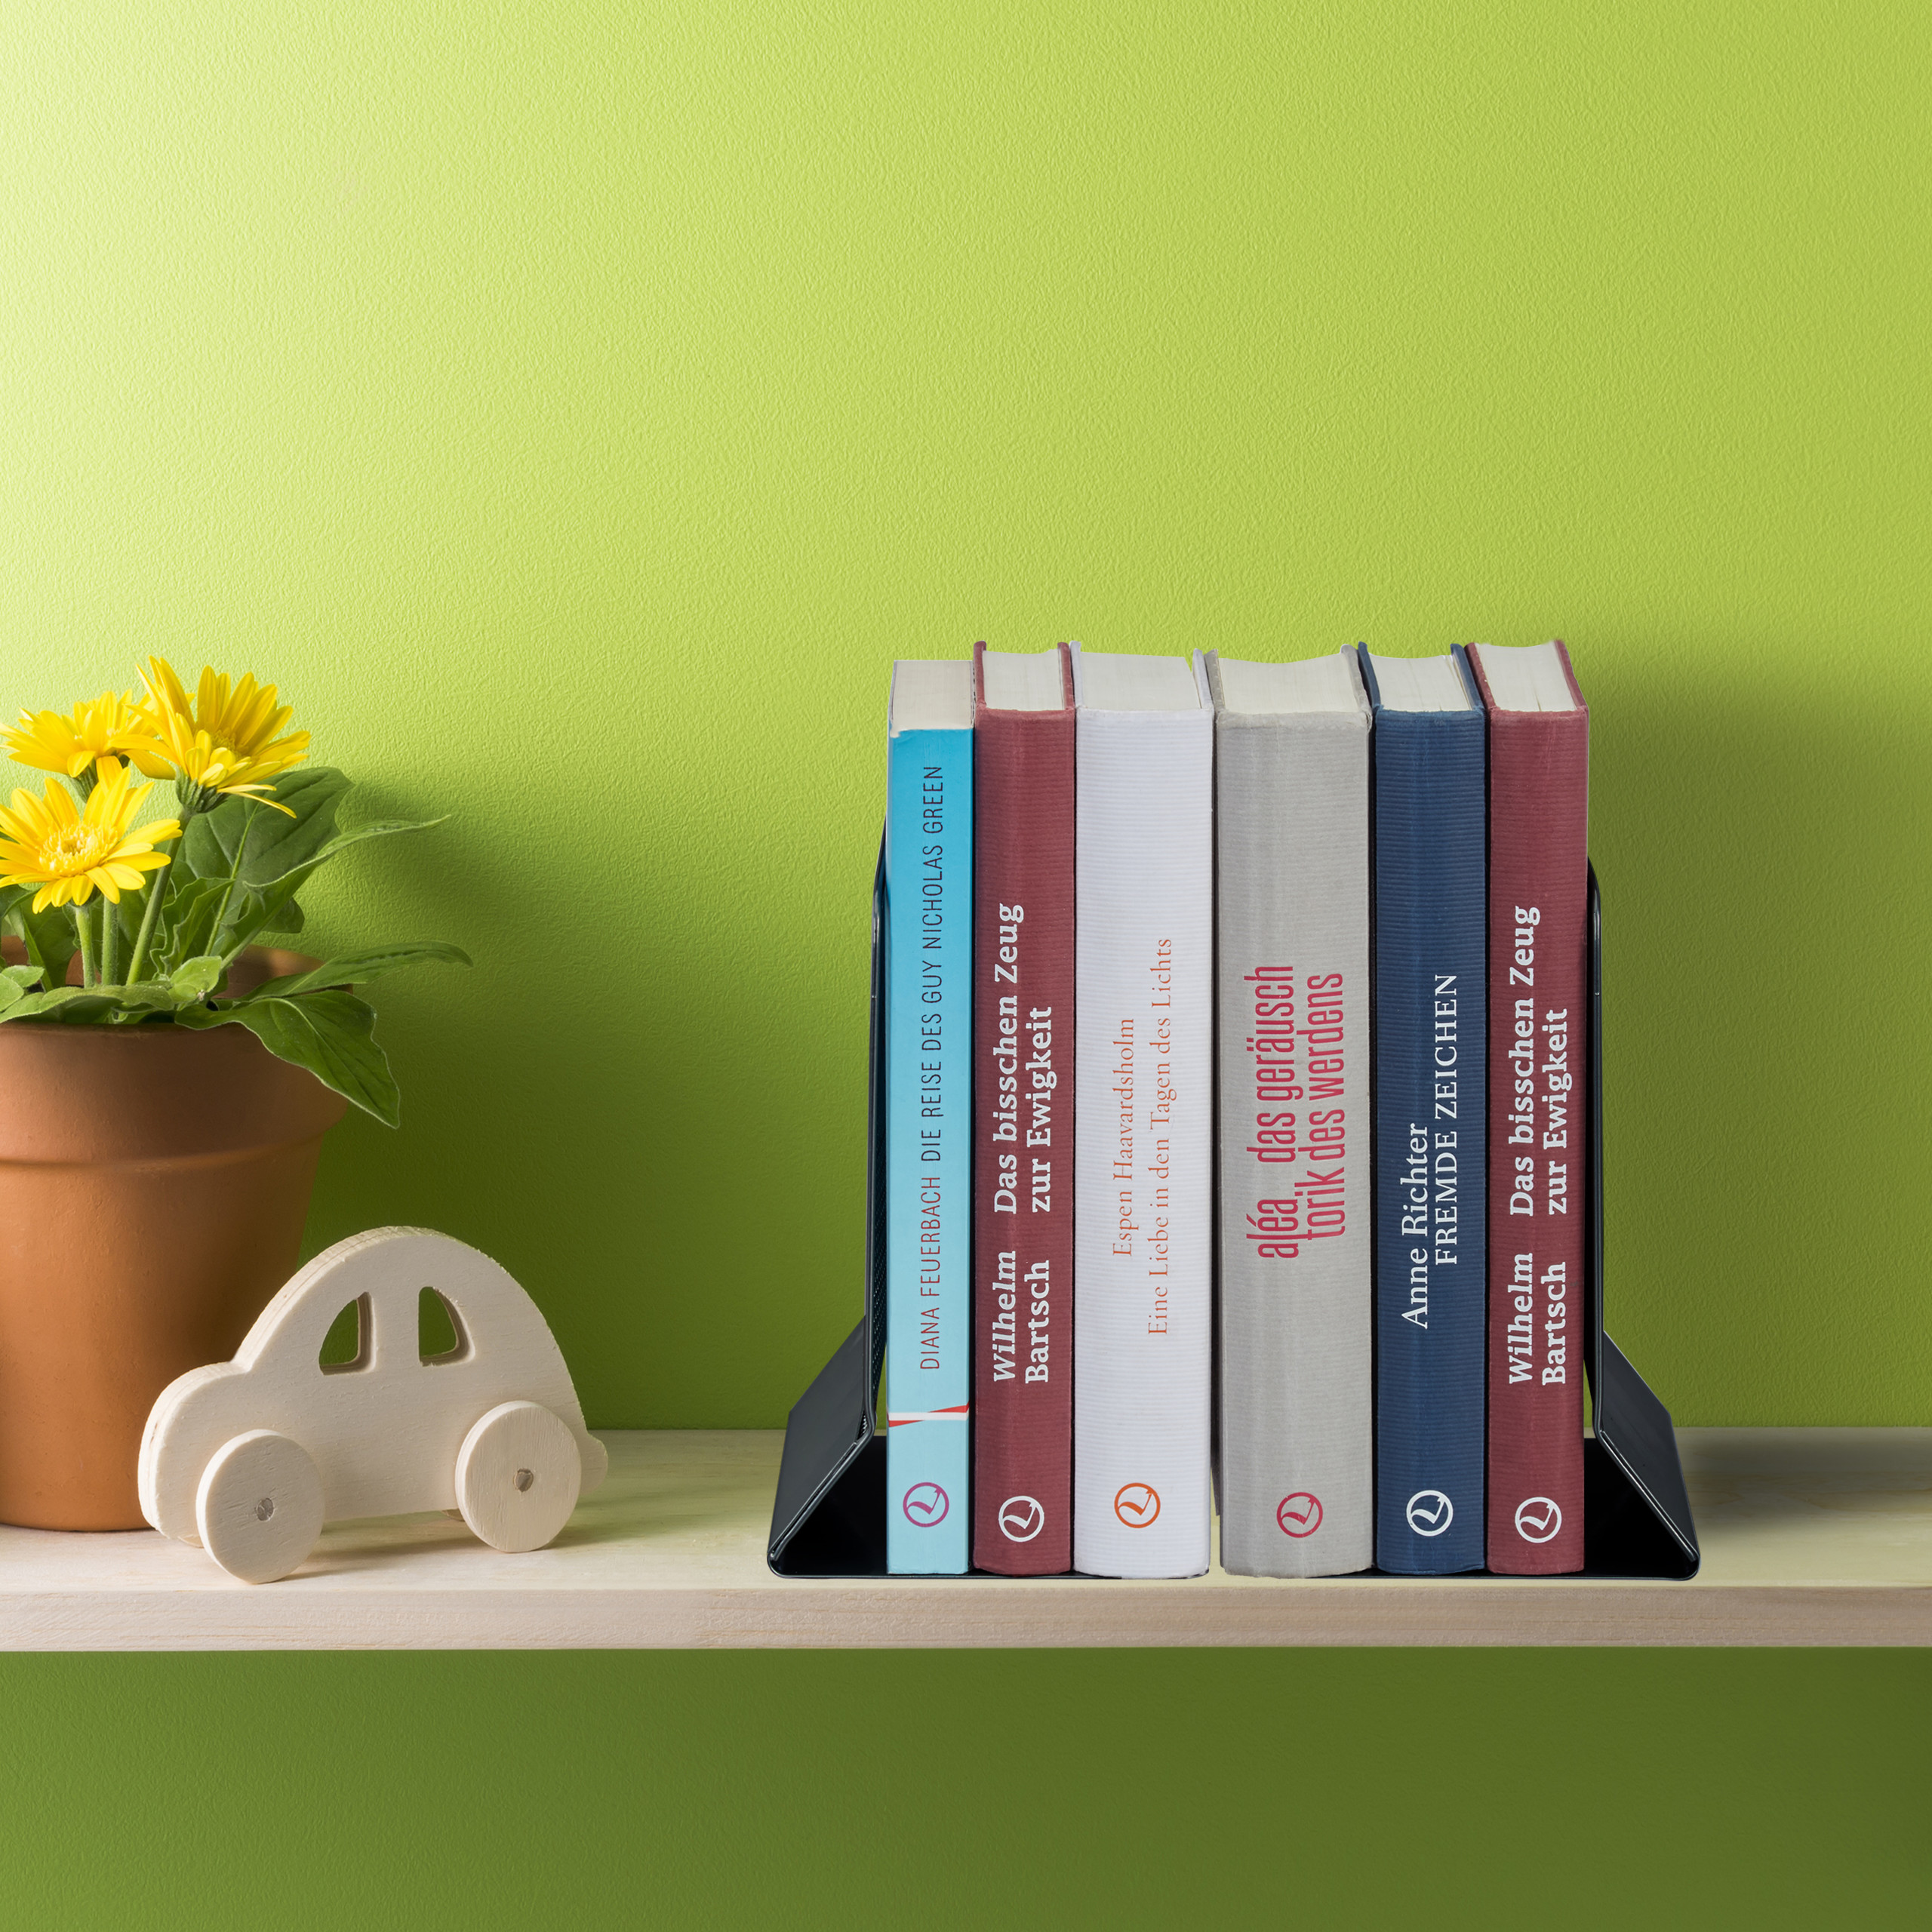 2-Piece-Bookend-Set-Decorative-Book-CD-and-DVD-Holders-Metal-Book-Support thumbnail 6